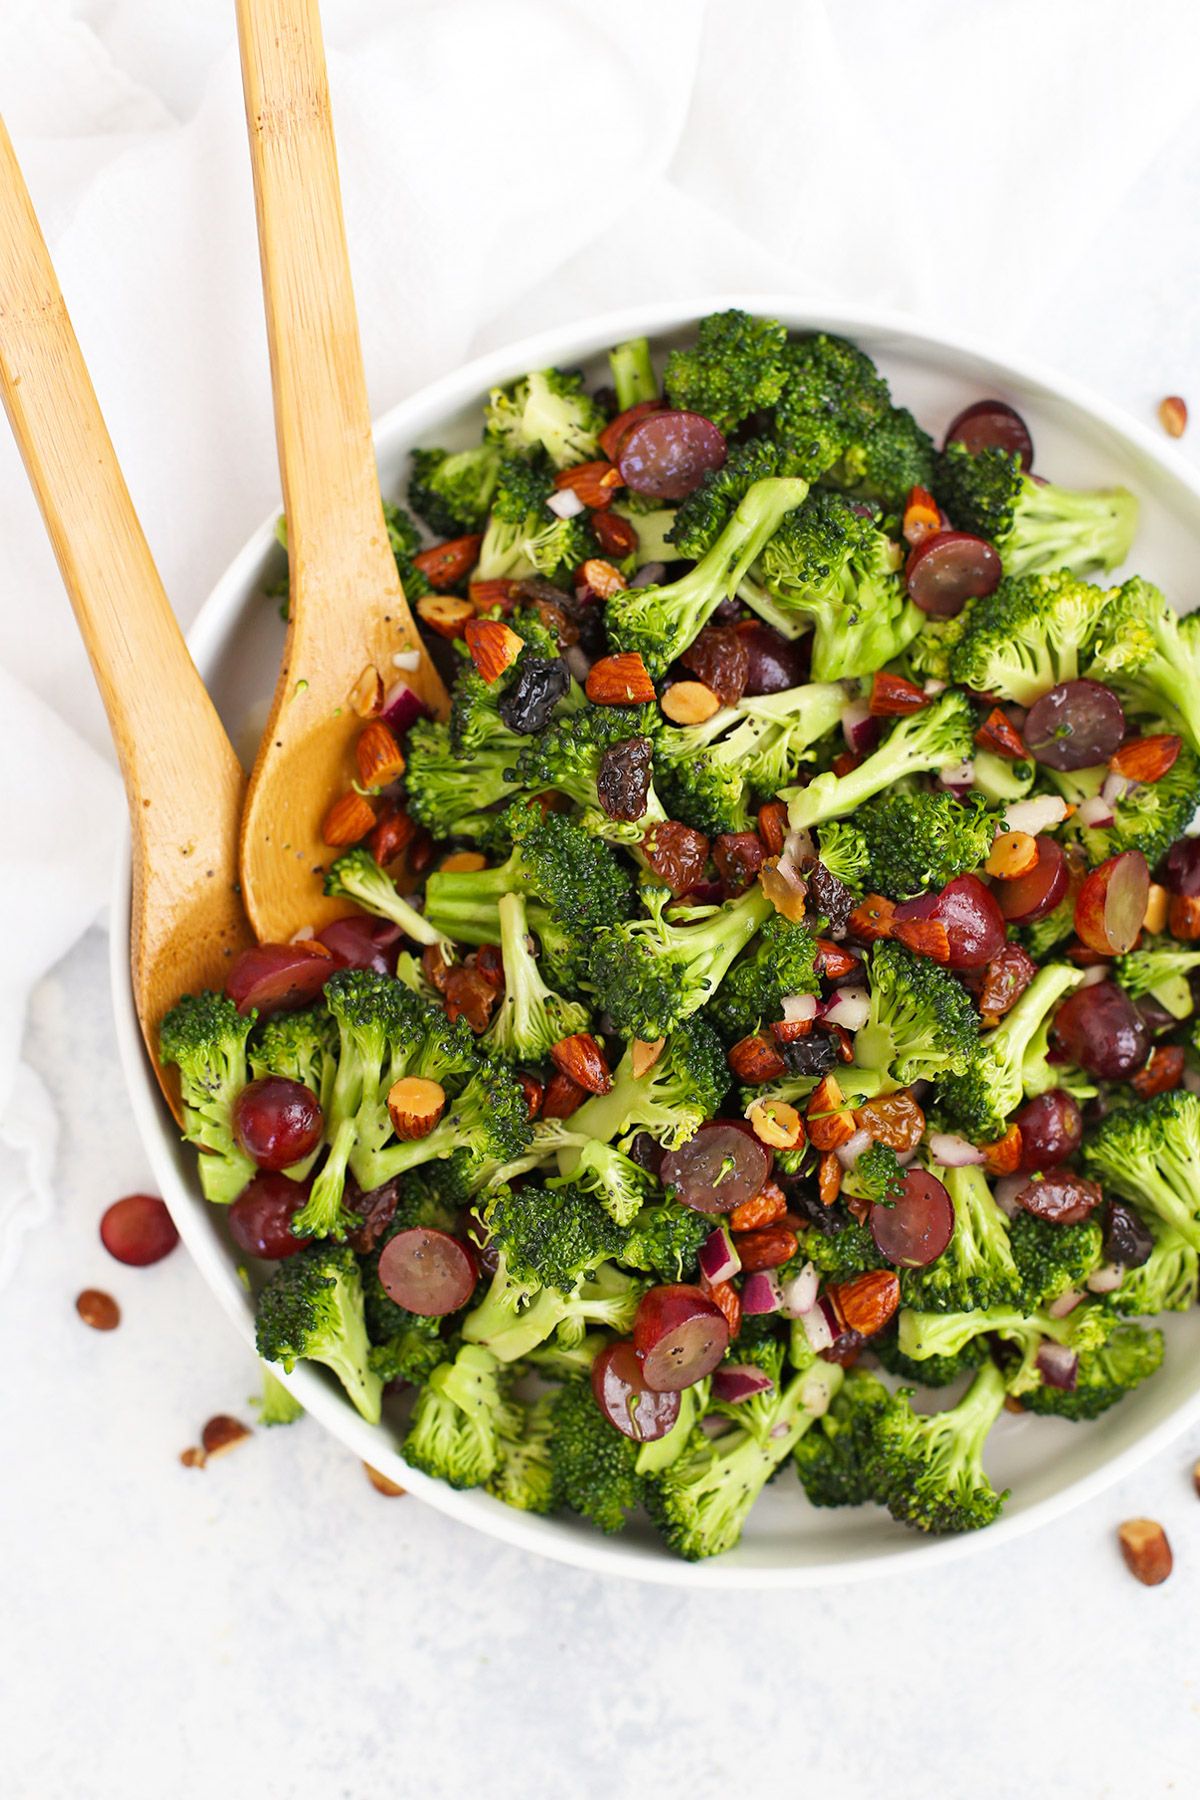 Overhead view of a bowl of vegan broccoli salad with poppy seed dressing, grapes, and smoked almonds